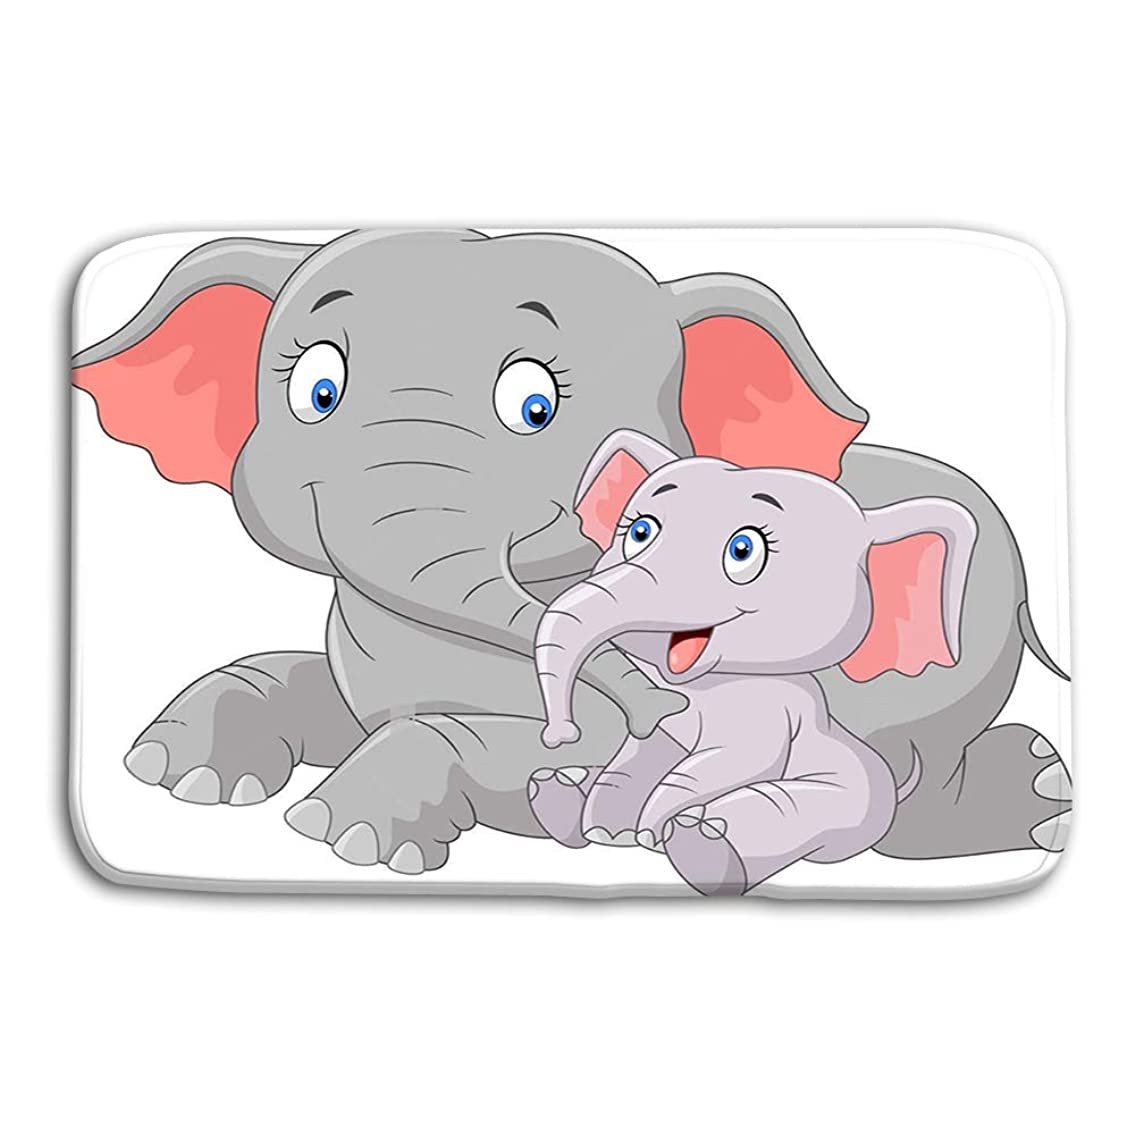 zexuandiy Place Mats Washable Fabric Placemats for Dining Room Kitchen Table Decor 23.6x15.7 Cartoon Cute Mother Baby Elephant White Background